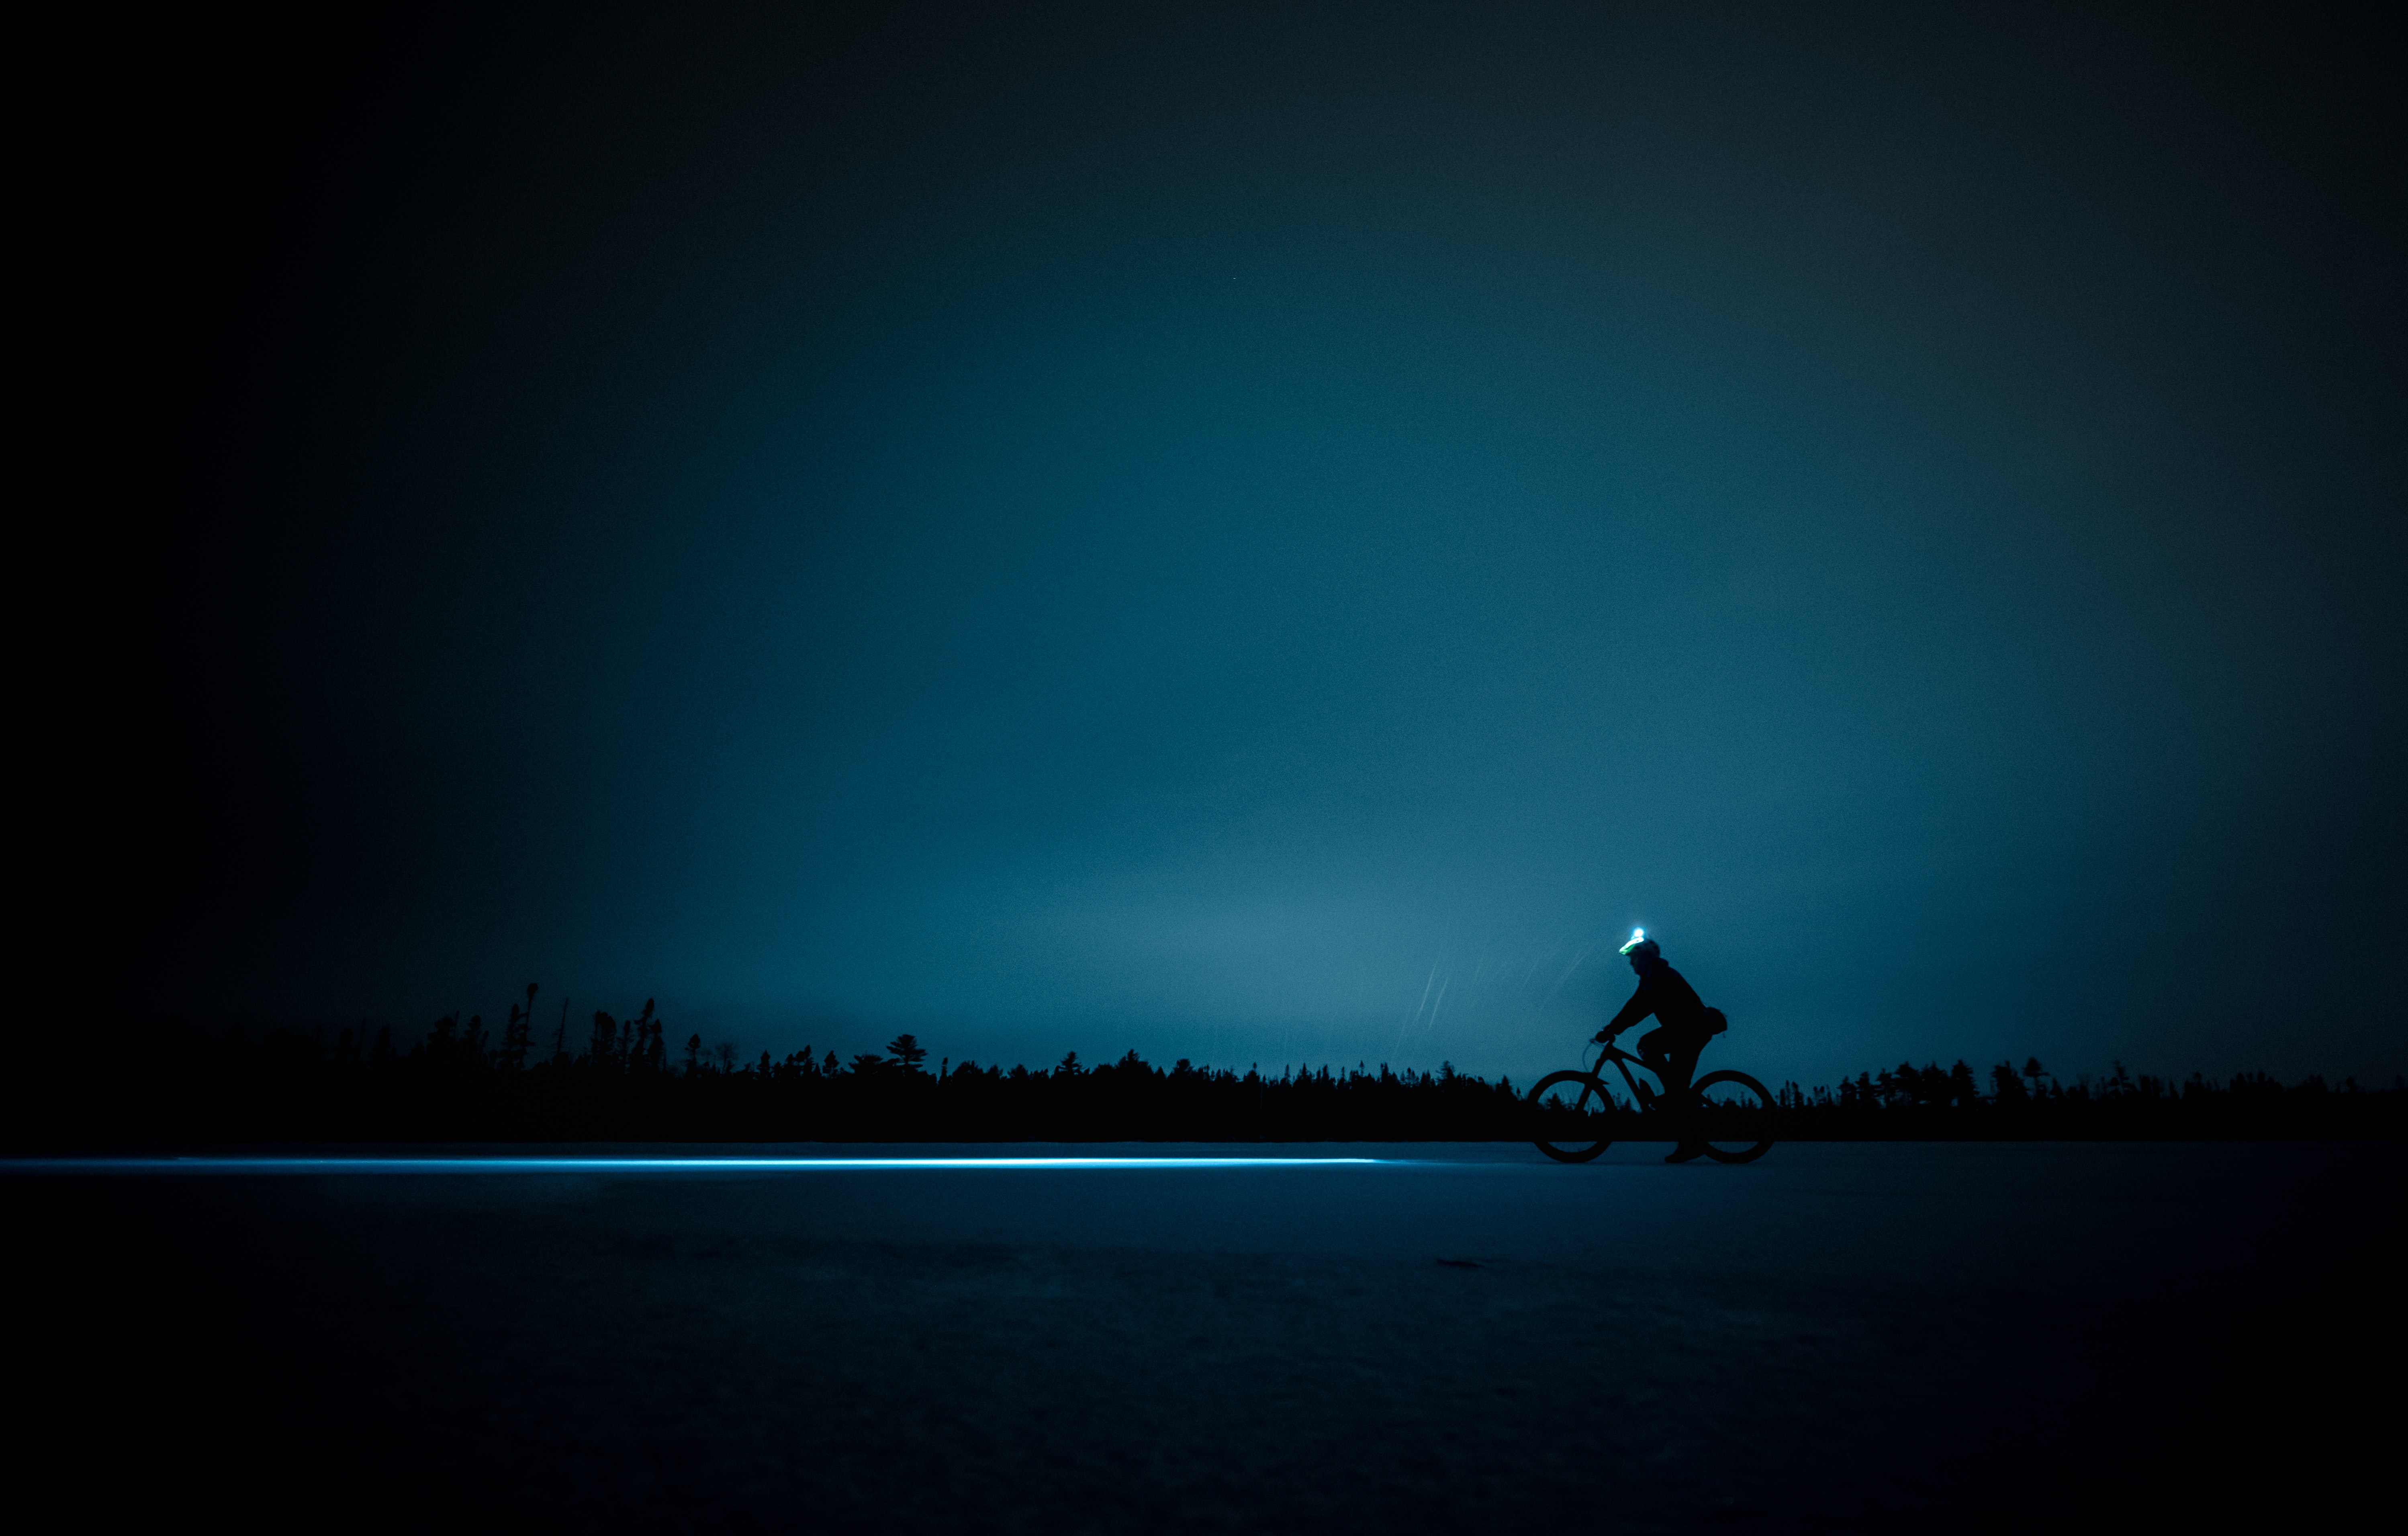 silhouette of person cycling during night